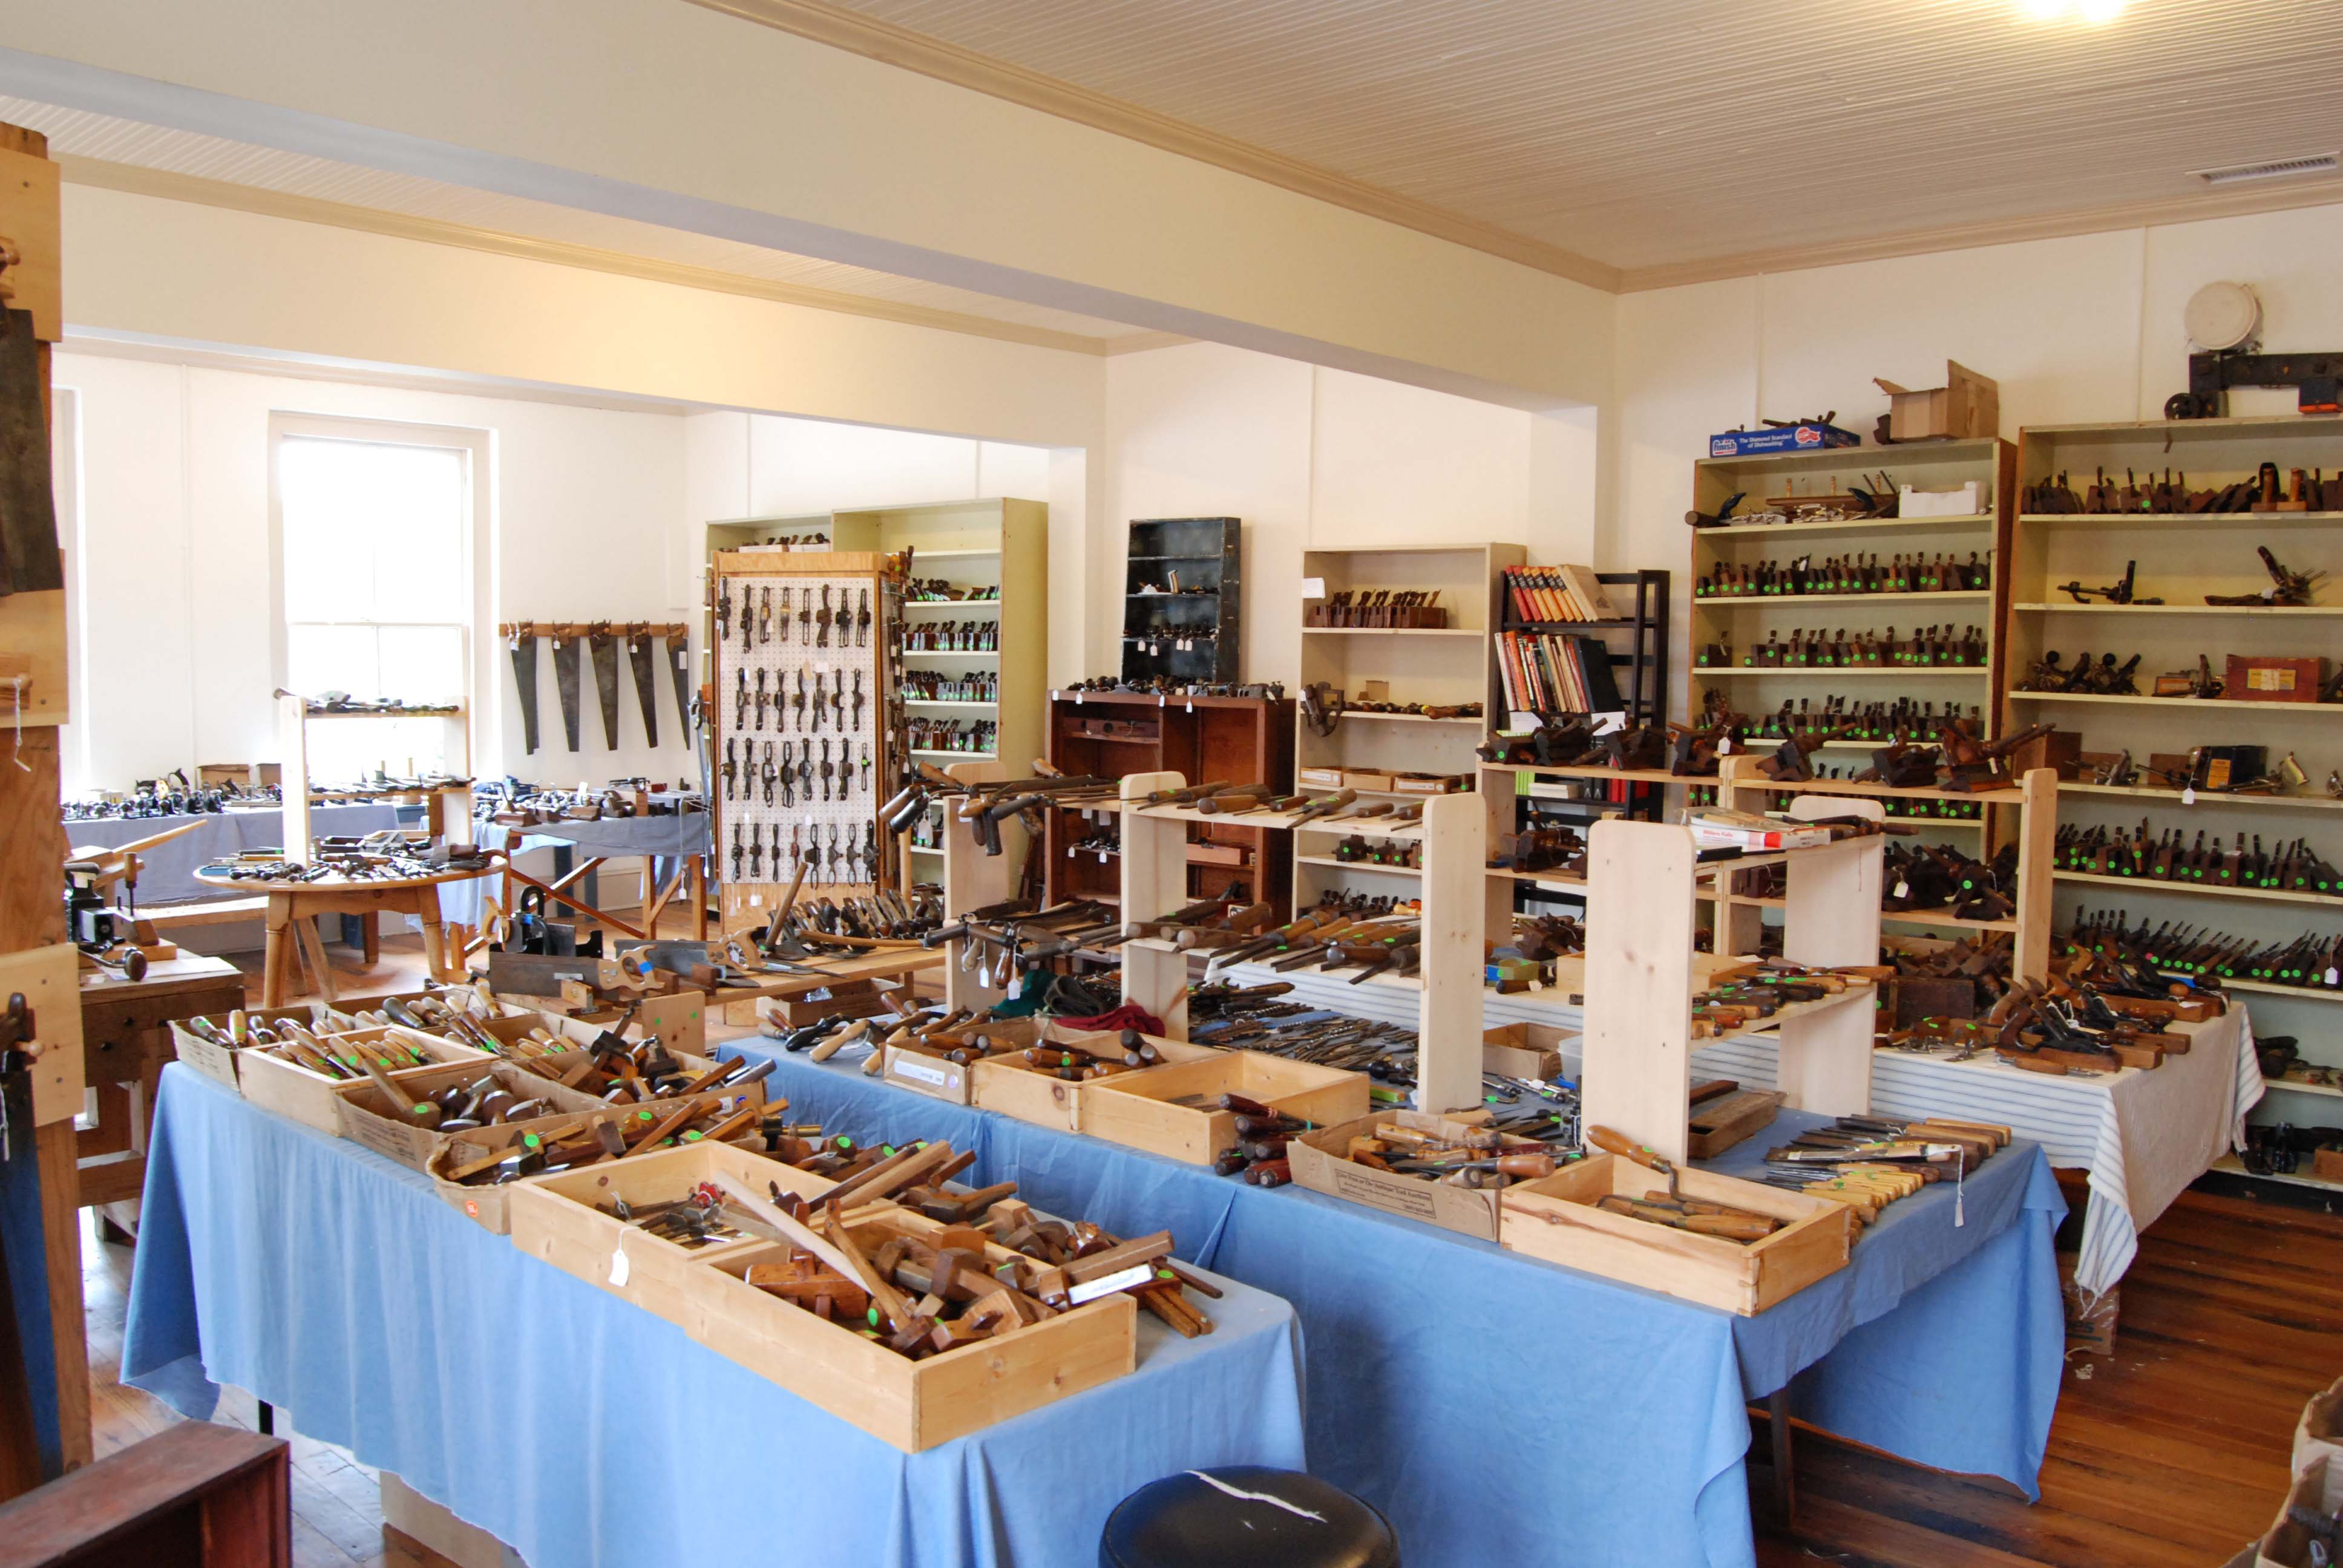 Woodworking Wood Near Me - ofwoodworking